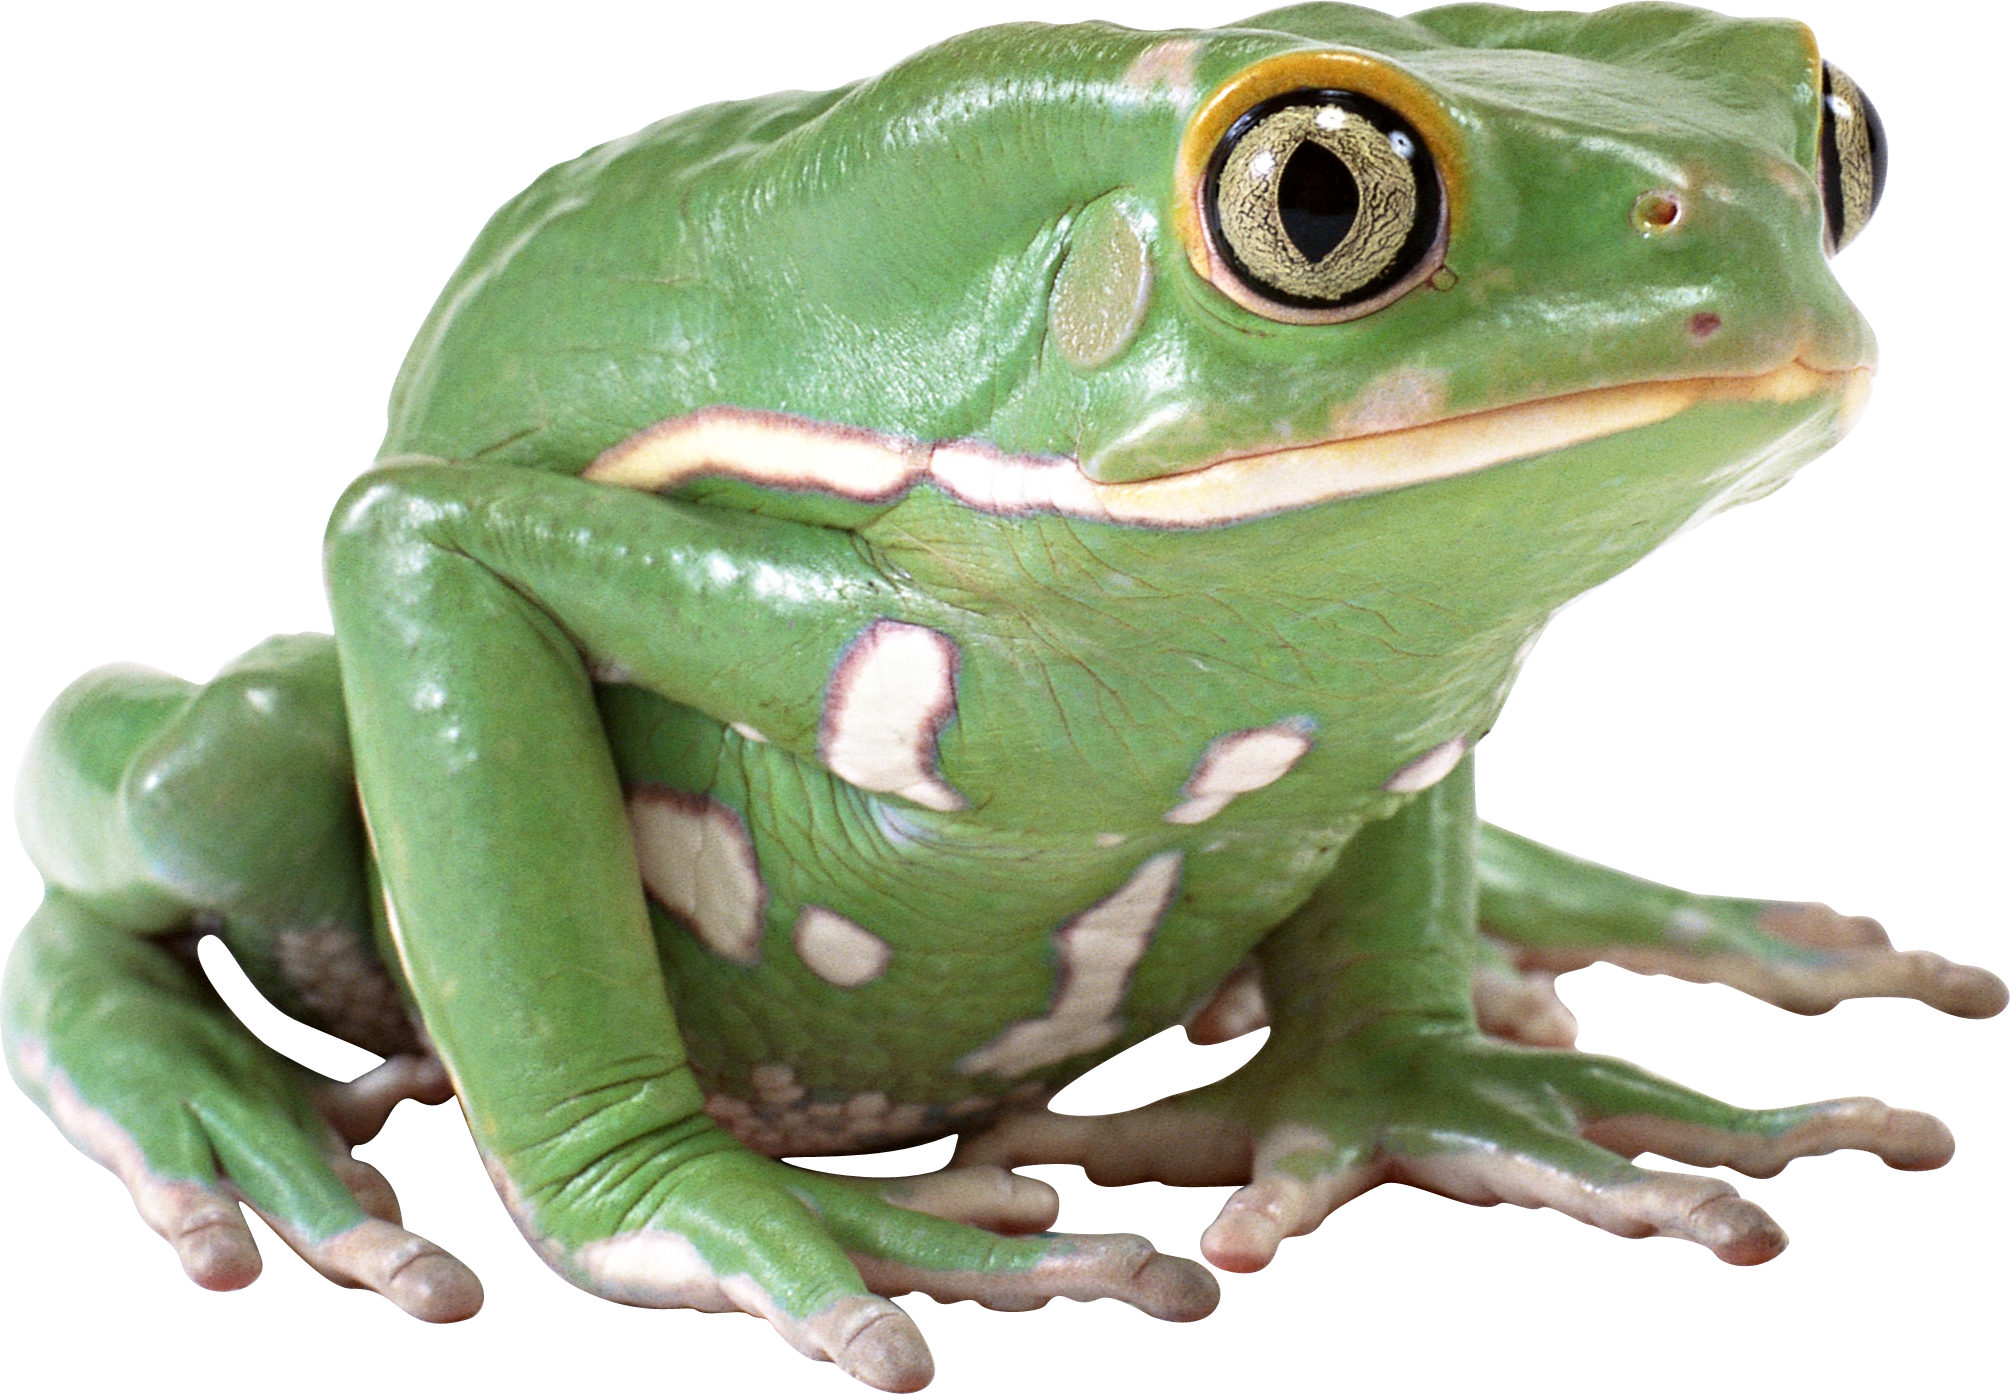 Frog PNG Image Free Download Image, Frogs image #43154 - PNG Frogs Free - Frog PNG HD